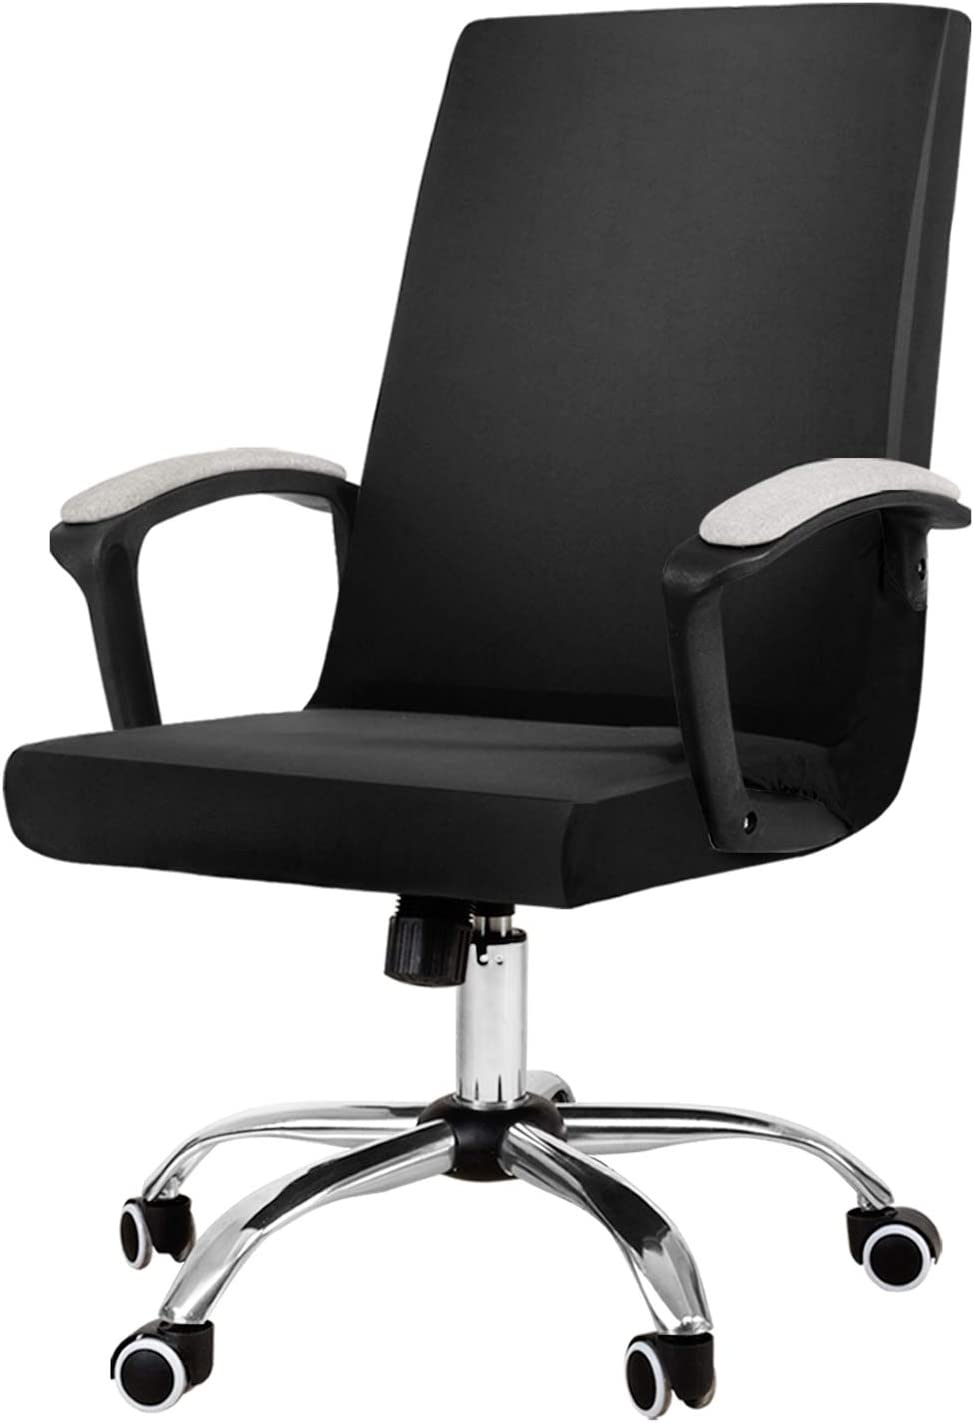 JIATER Stretchable Office Chair Cover Computer Chair Slipcovers Universal Boss Chair Seat Covers Modern High Back Chair Slip Cover for Leather Desk Chair (Black)